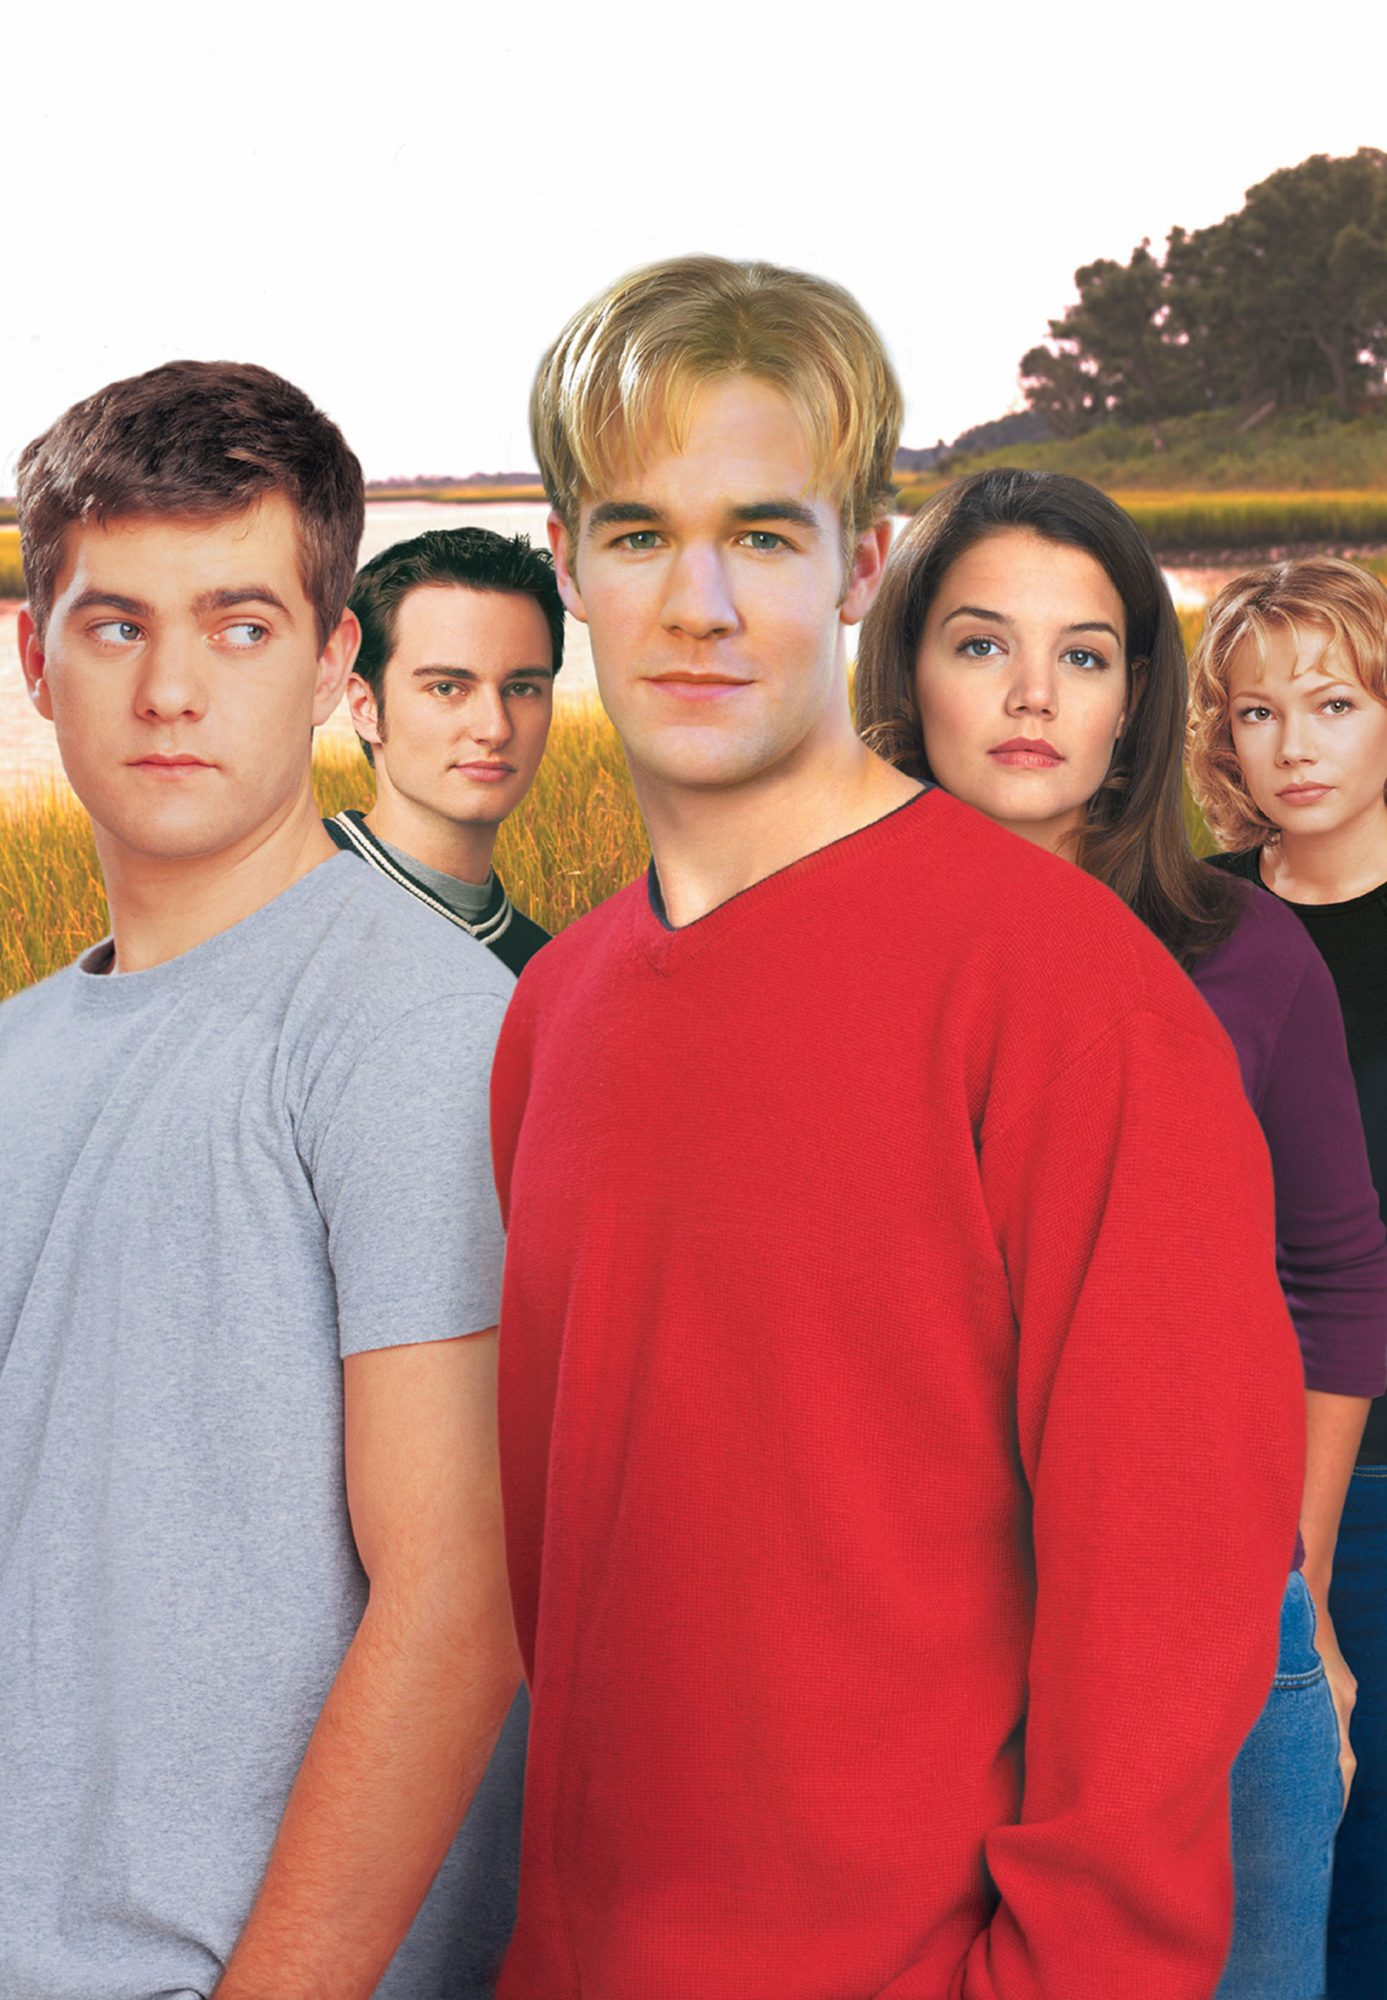 DAWSON'S CREEK, Joshua Jackson, Kerr Smith, James van Der Beek, Katie Holmes, Michelle Williams, (Se